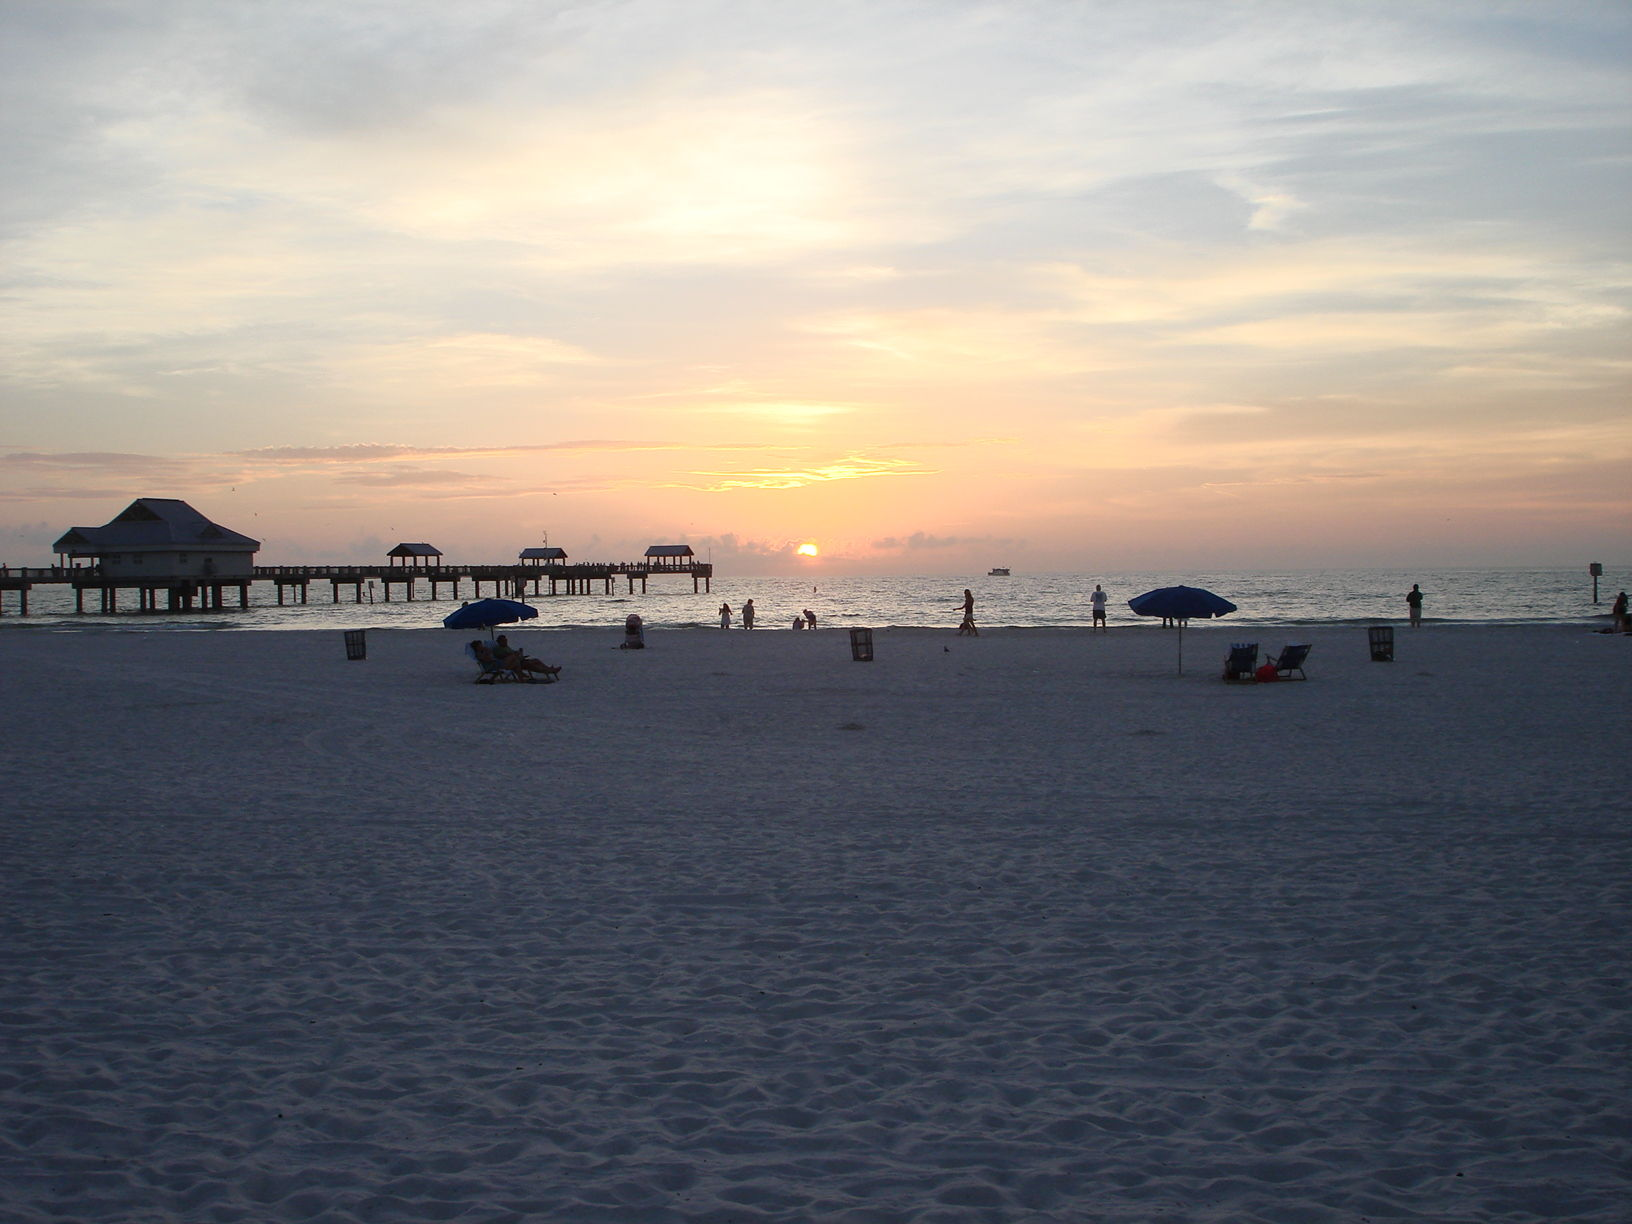 Sunseting in the Gulf of Mexico. Shot from Clearwater Beach.